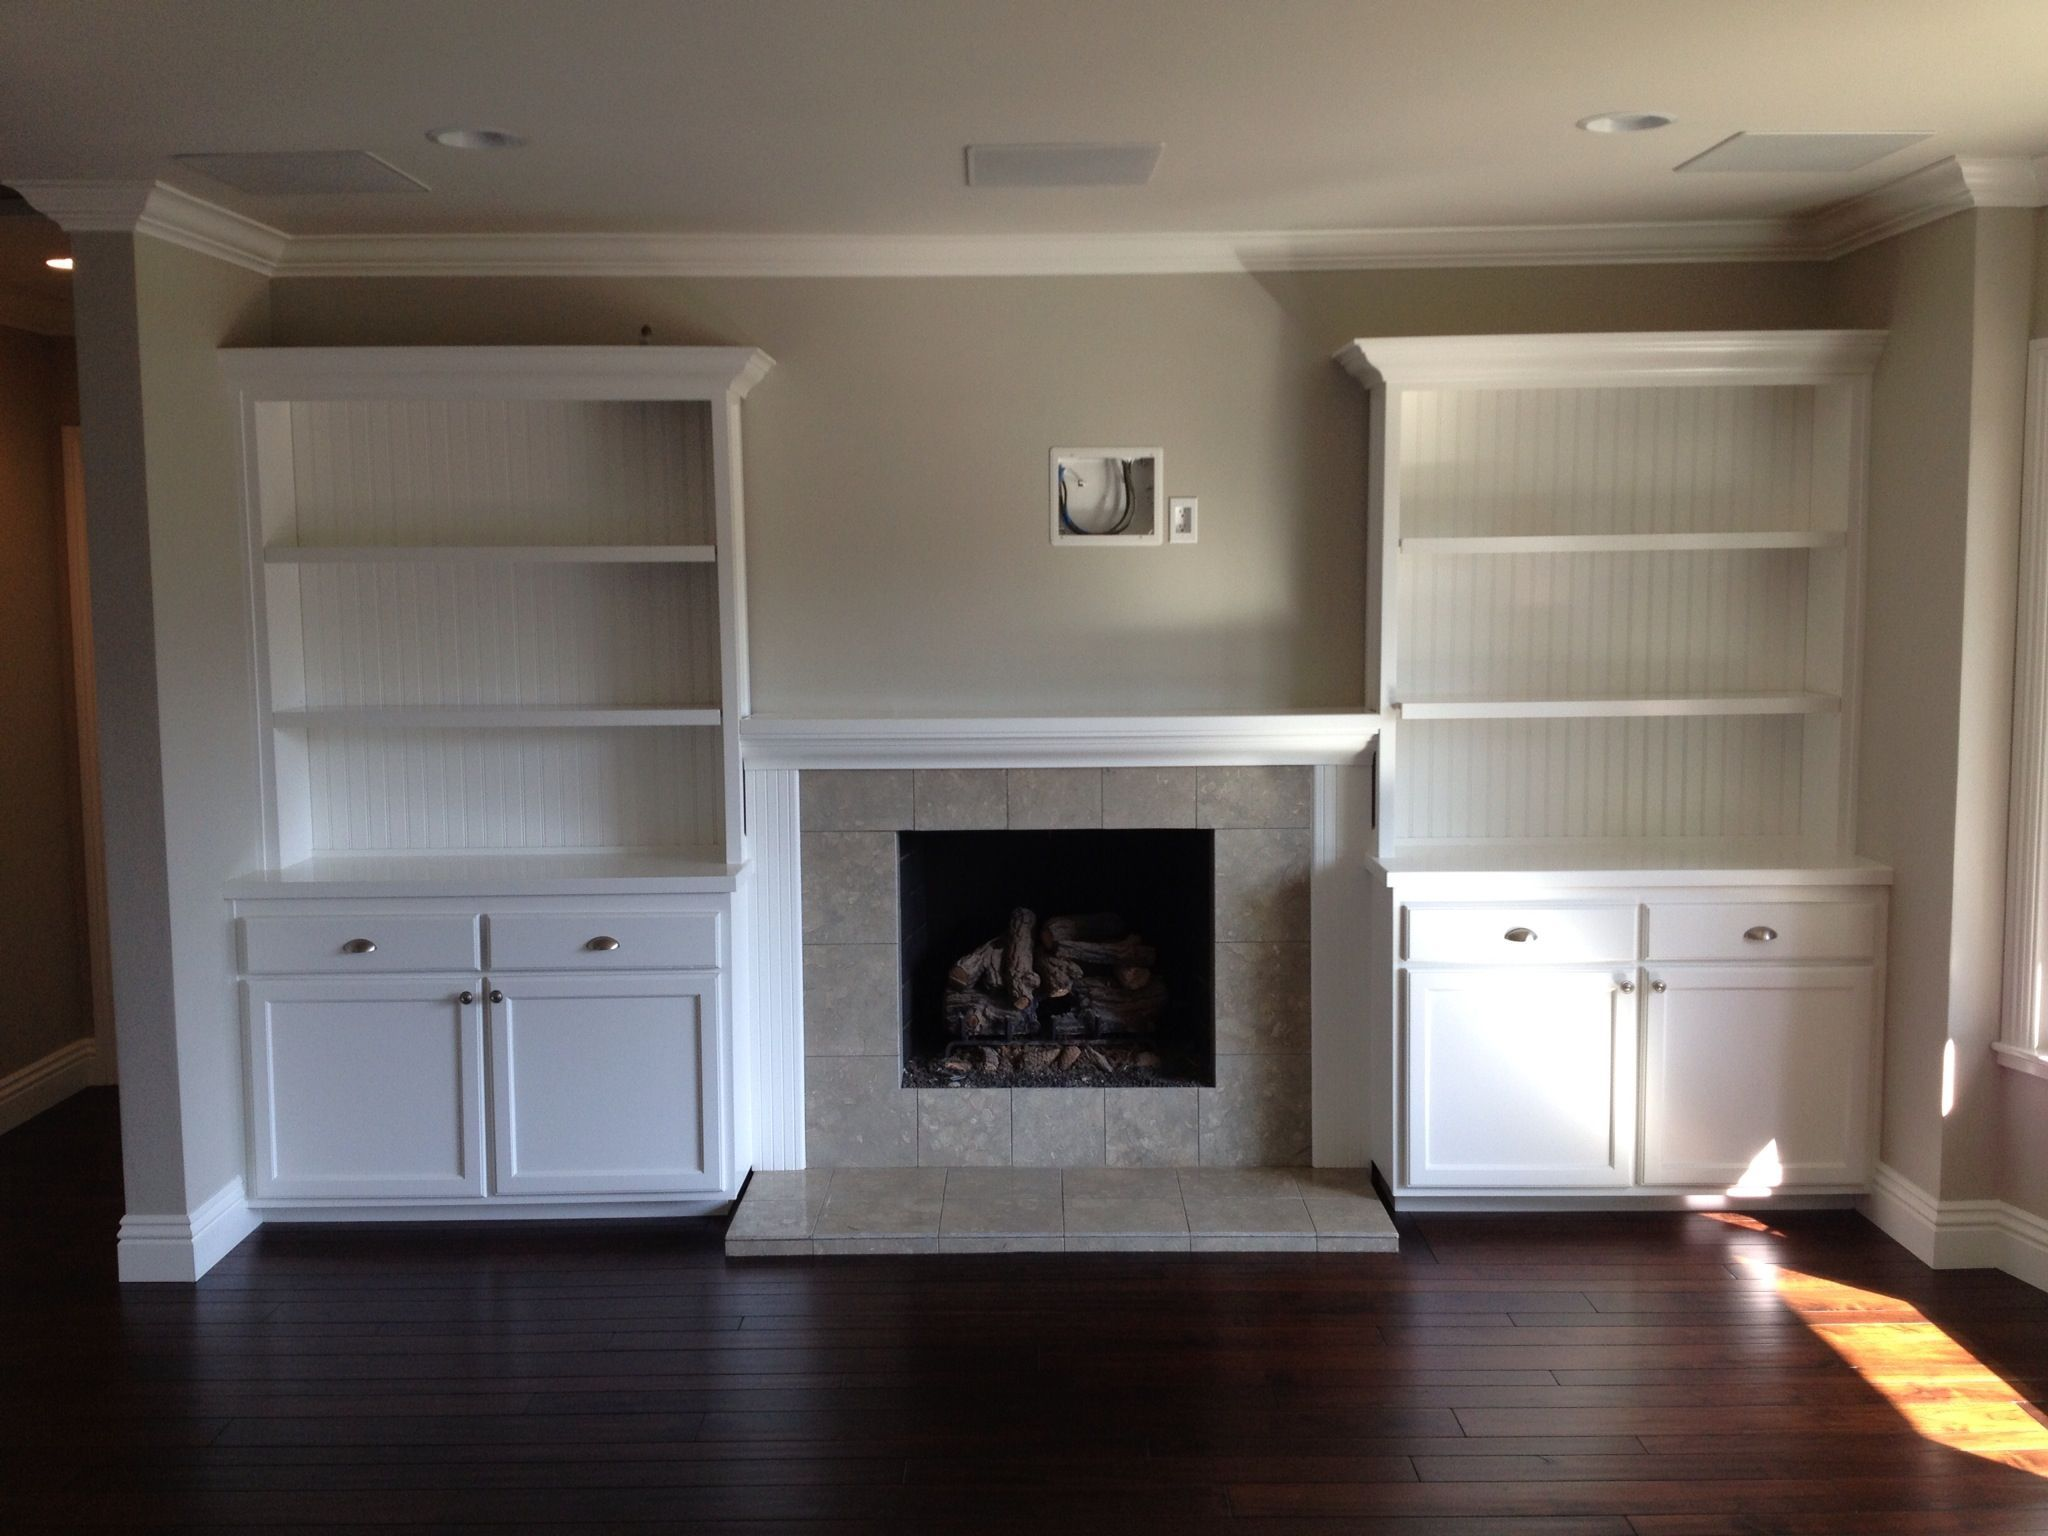 image result for custom built in cabinets around fireplace rh pinterest it Custom Built in Cabinets around Fireplace Oak Mantle Cabinets